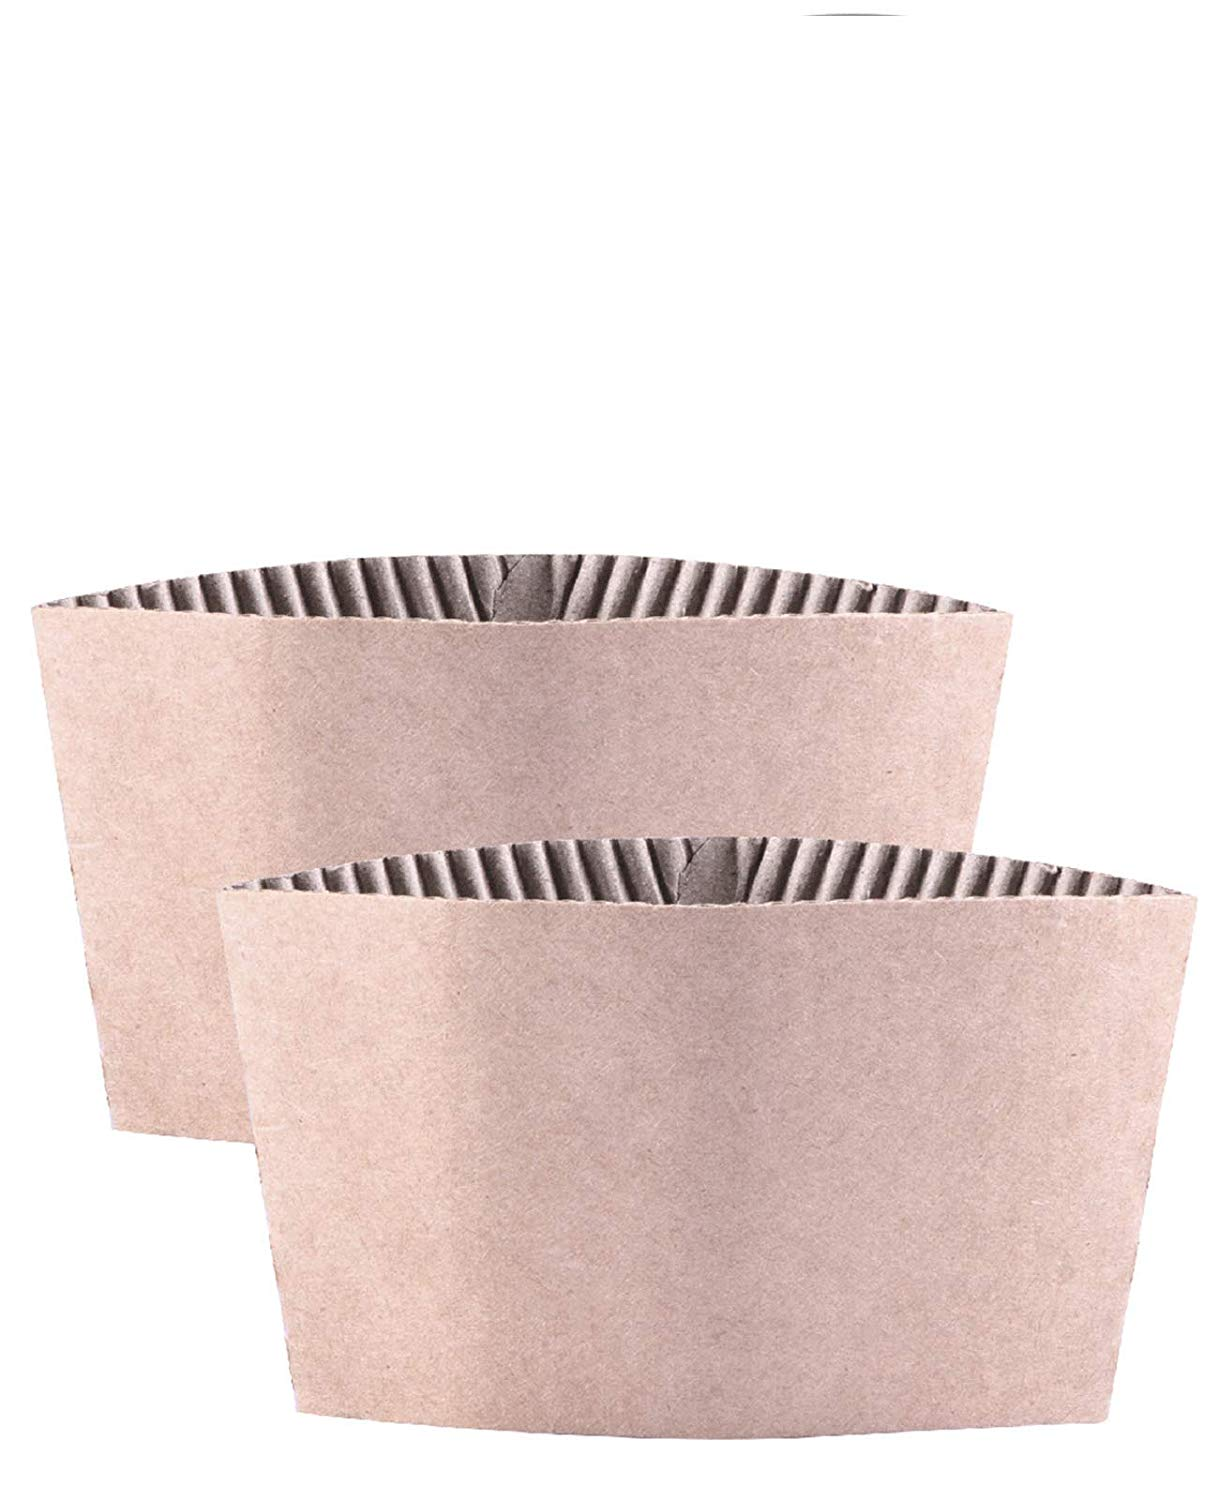 Cup Sleeve Luckypack Corrugated jacket Cafe Drink 12oz 16 oz 20 Ounce Disposable Paper Coffee Cup Sleeves Reusable Holder Cardboard for Hot Drinks 500 Count